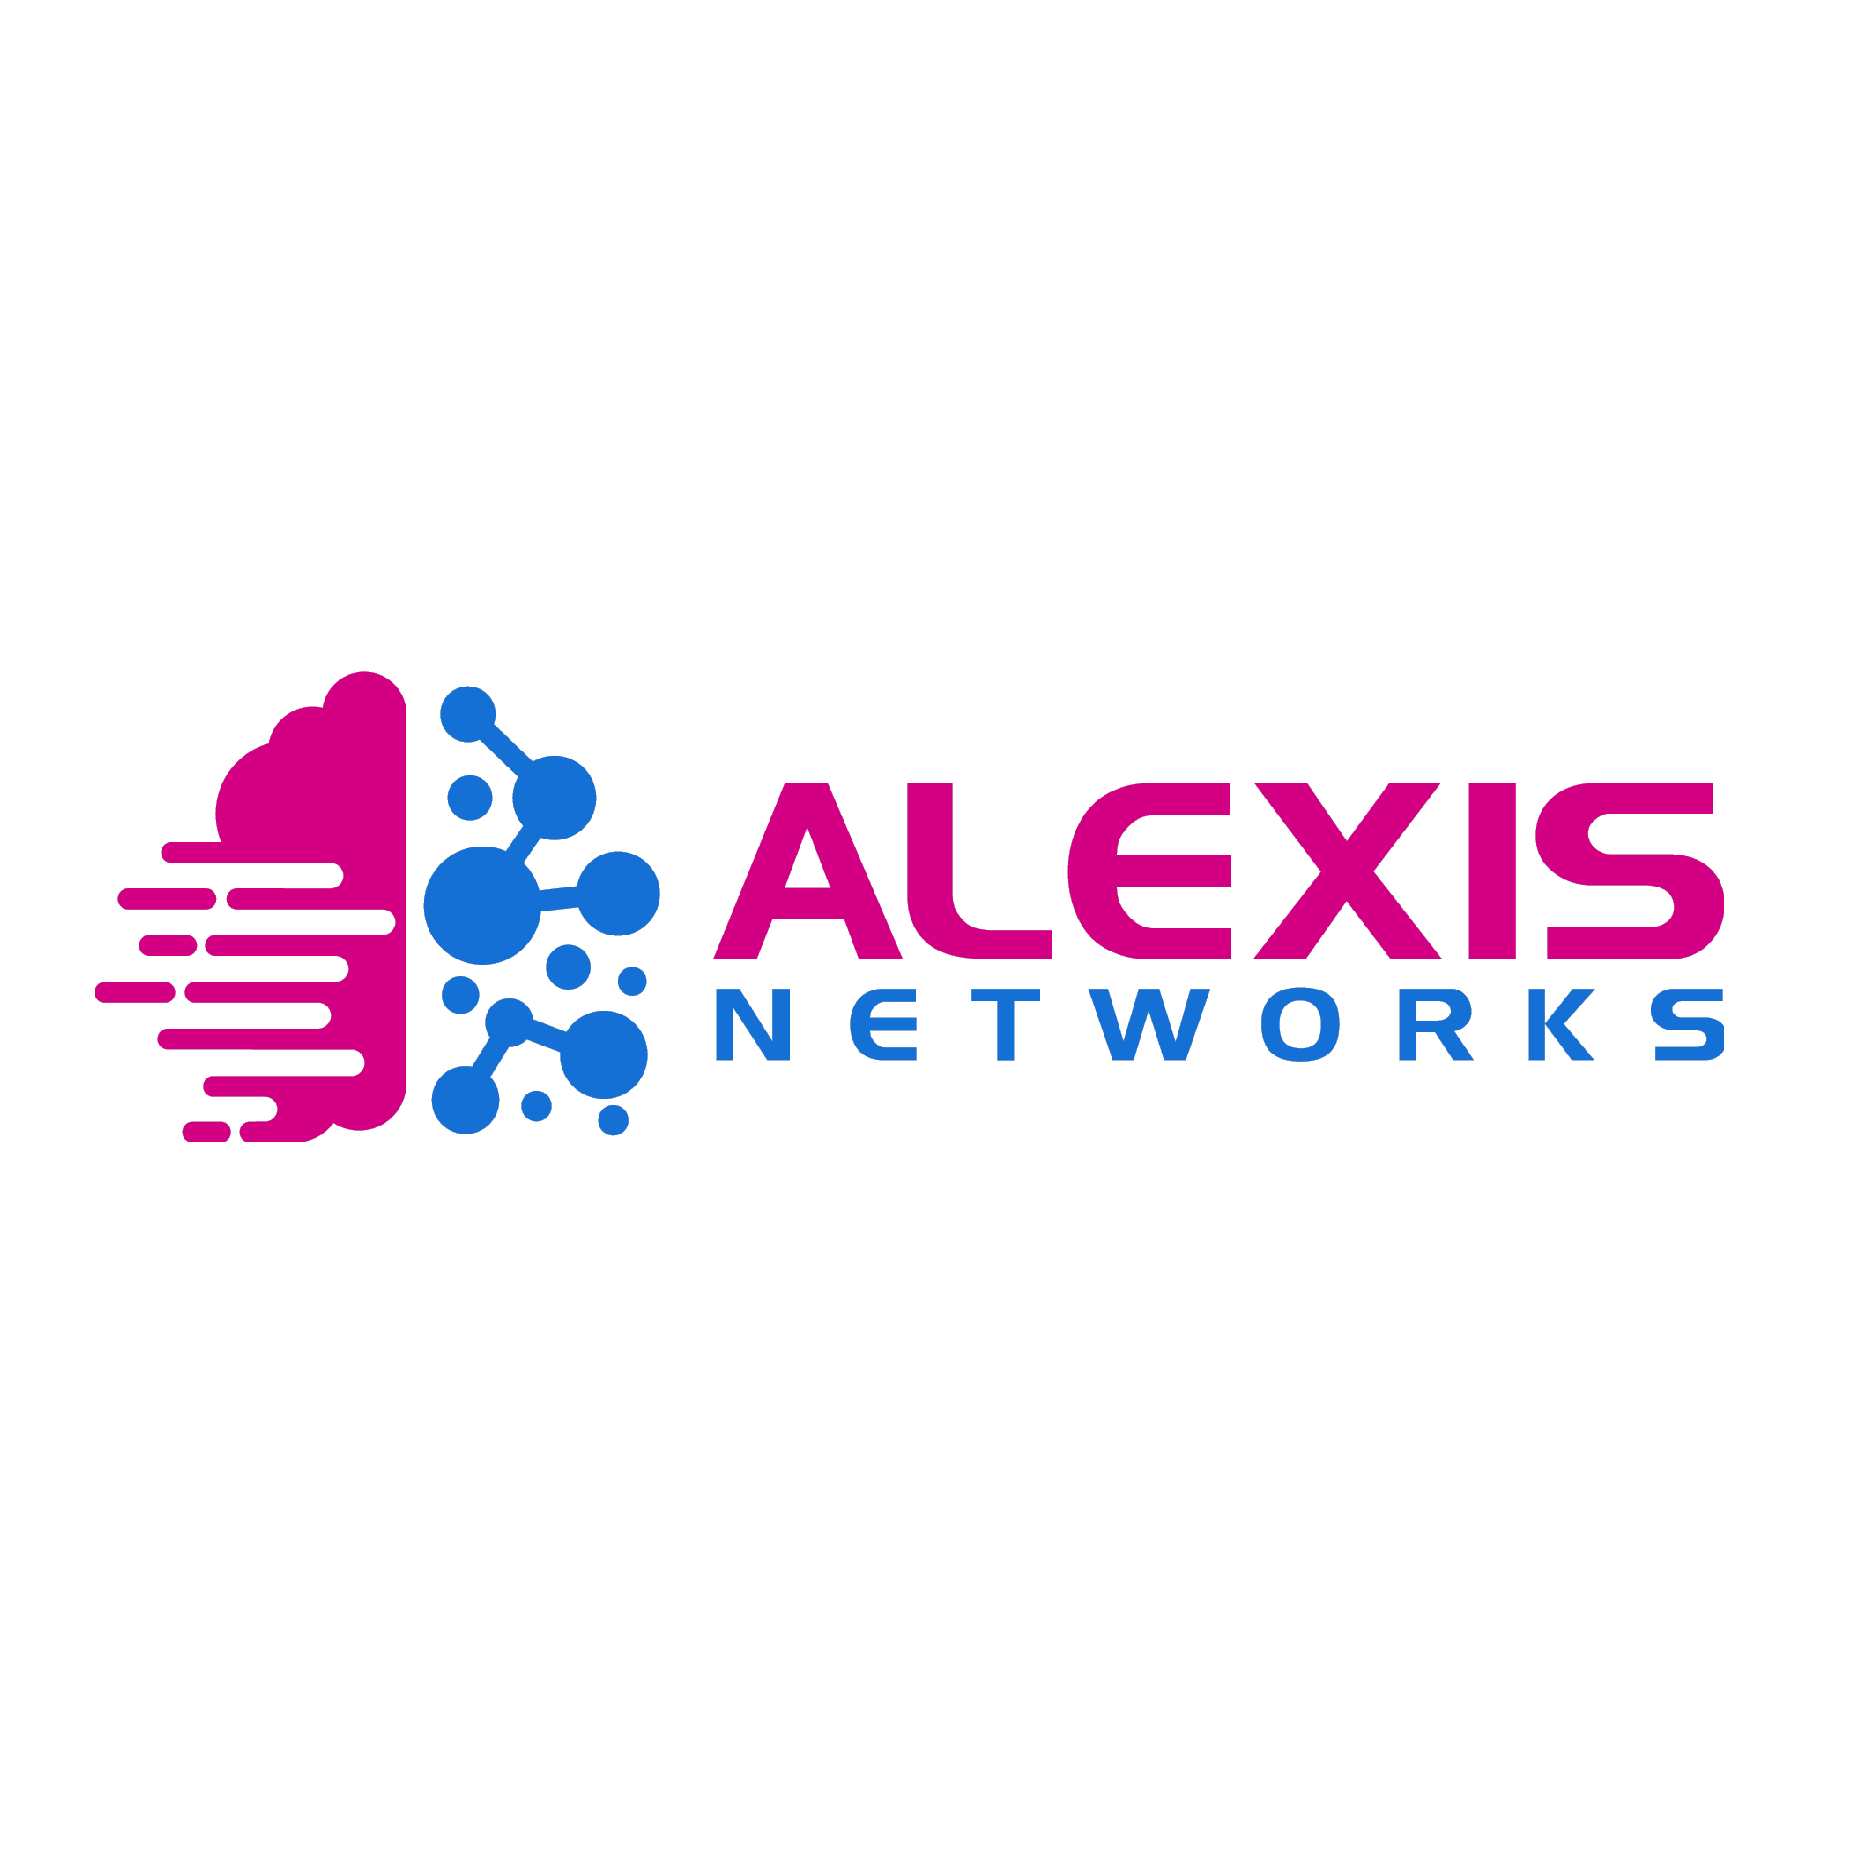 Alexis Networks